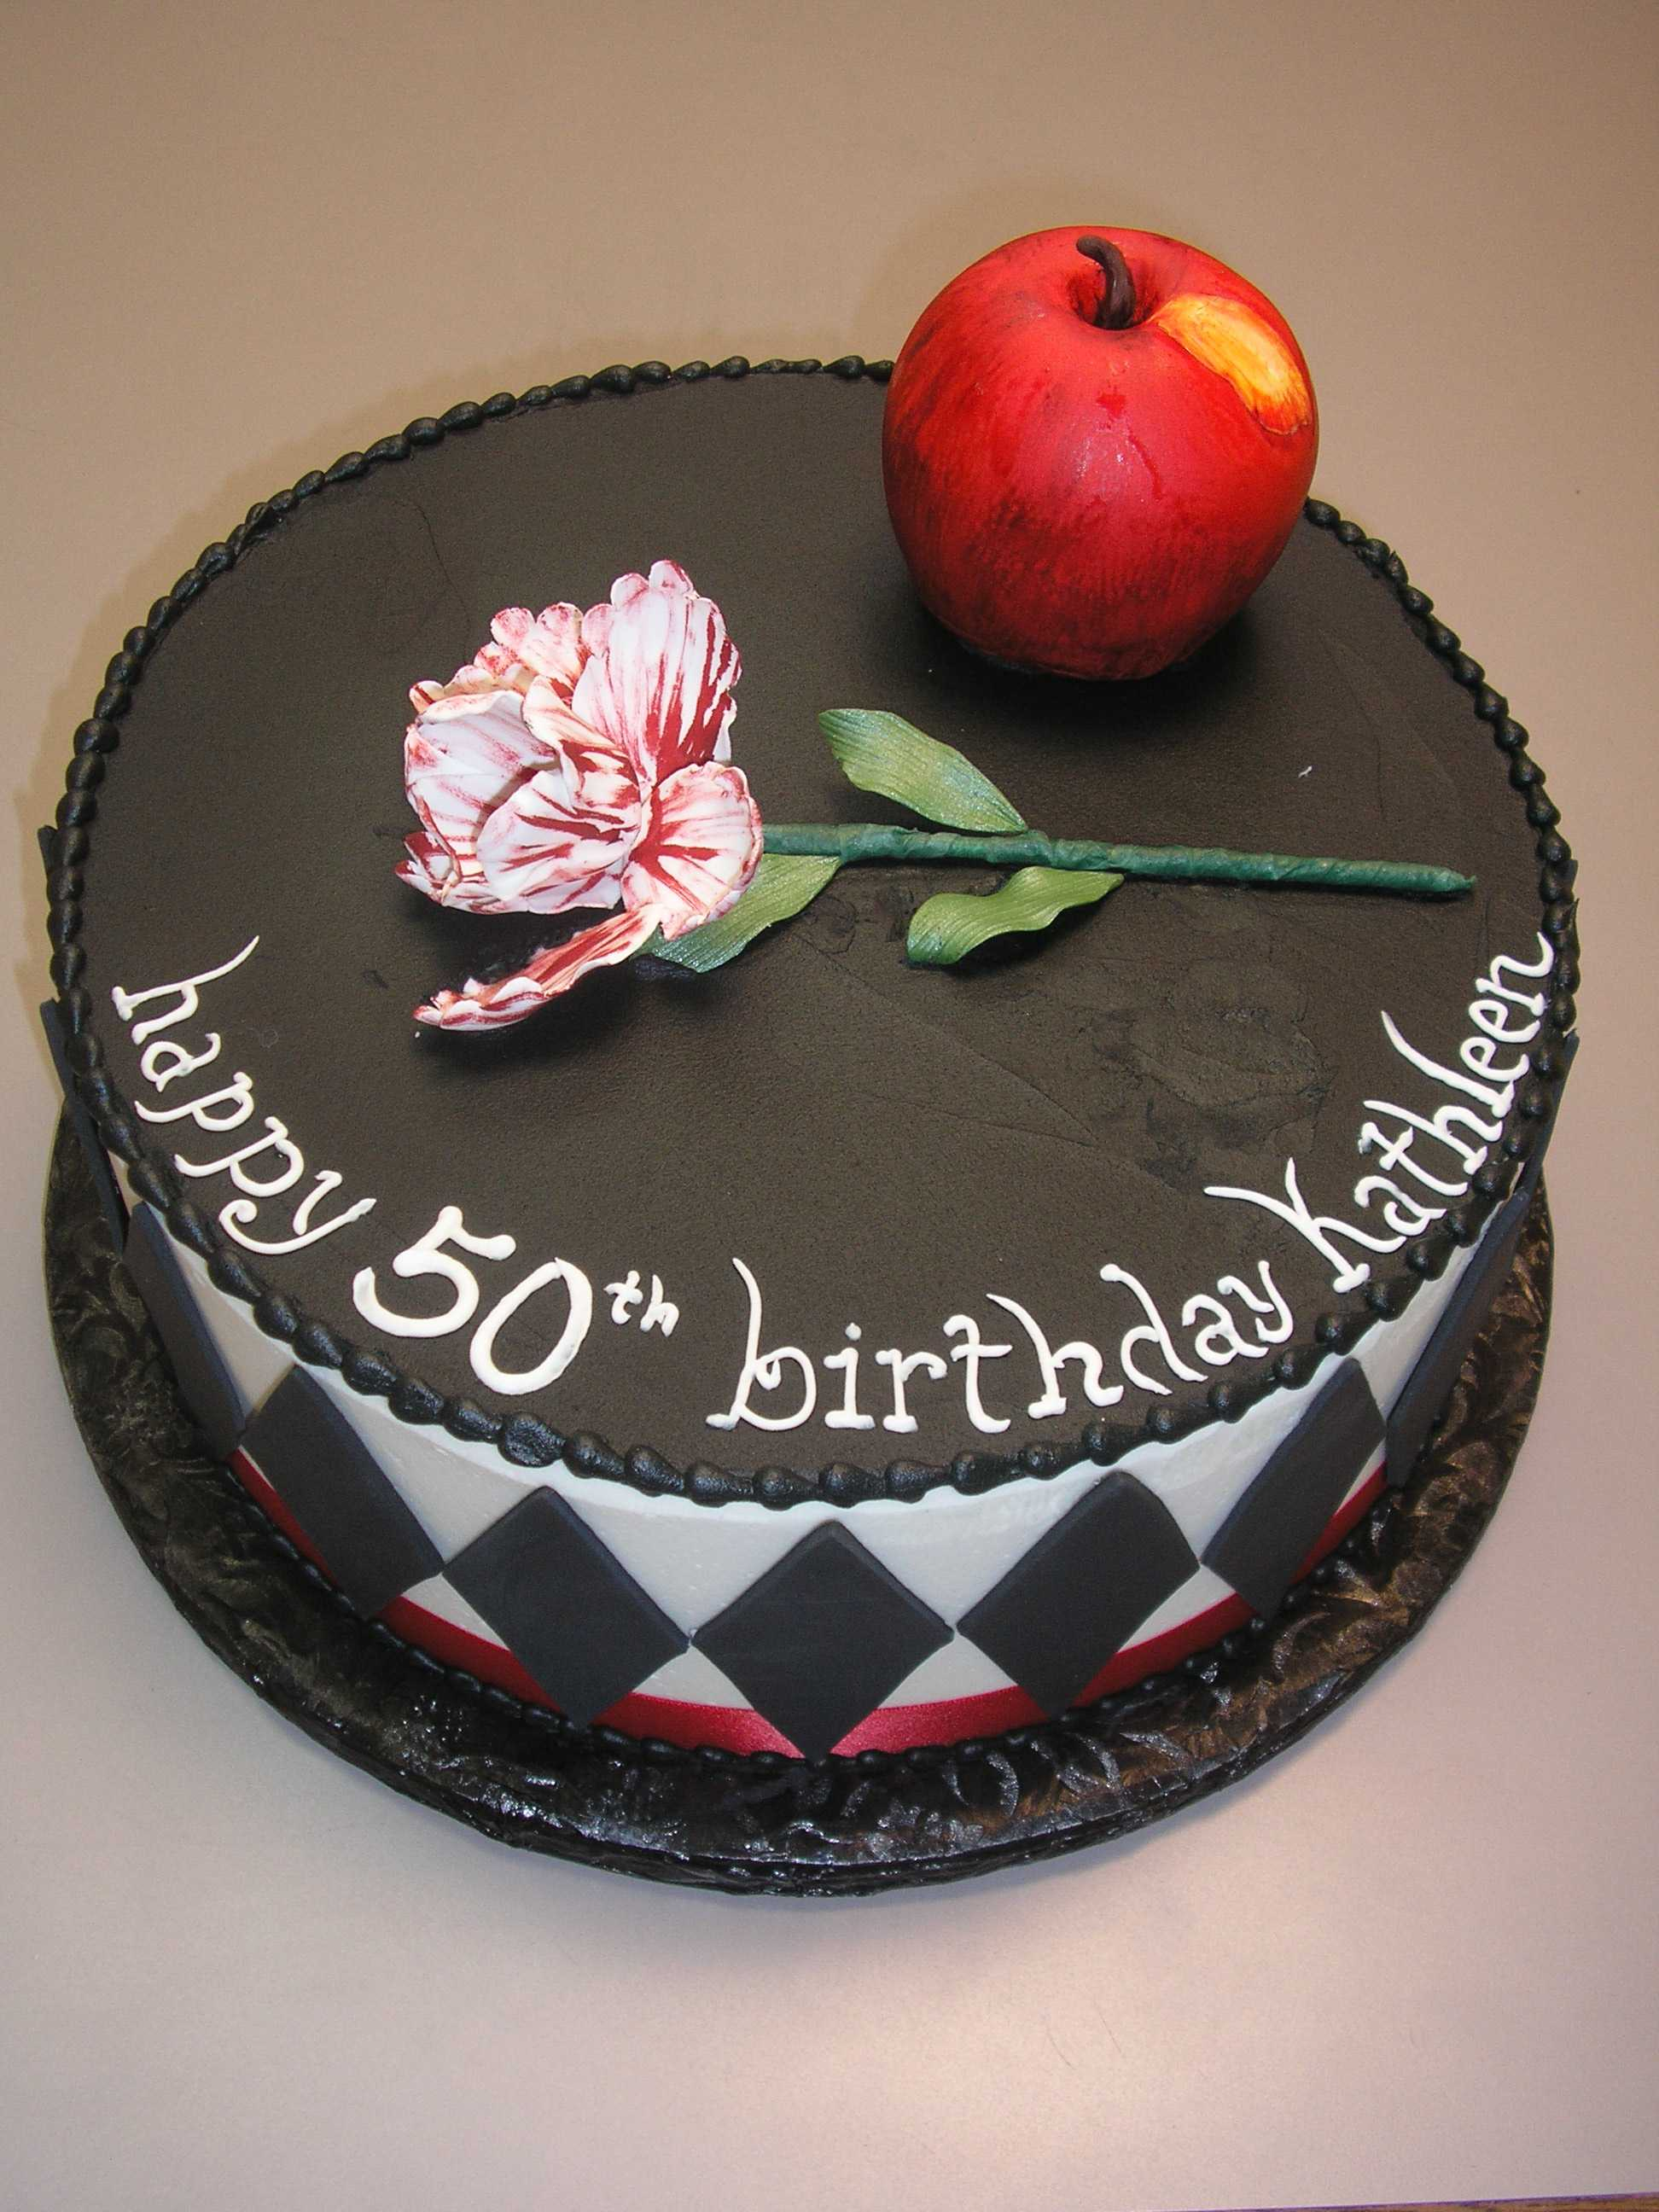 Cake with an apple